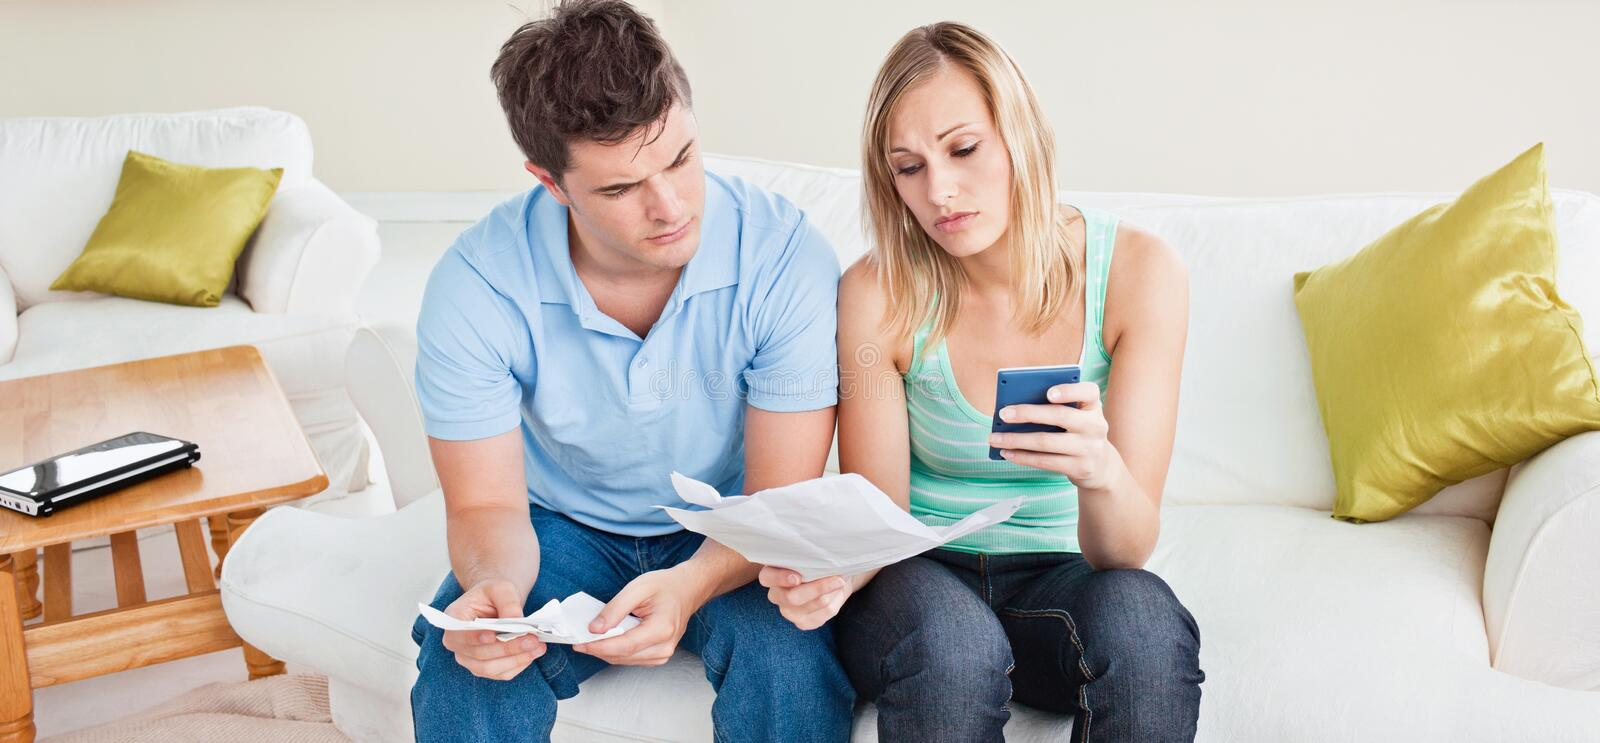 Download Concentrated Young Couple Calculating Bills Stock Photo - Image: 16347624